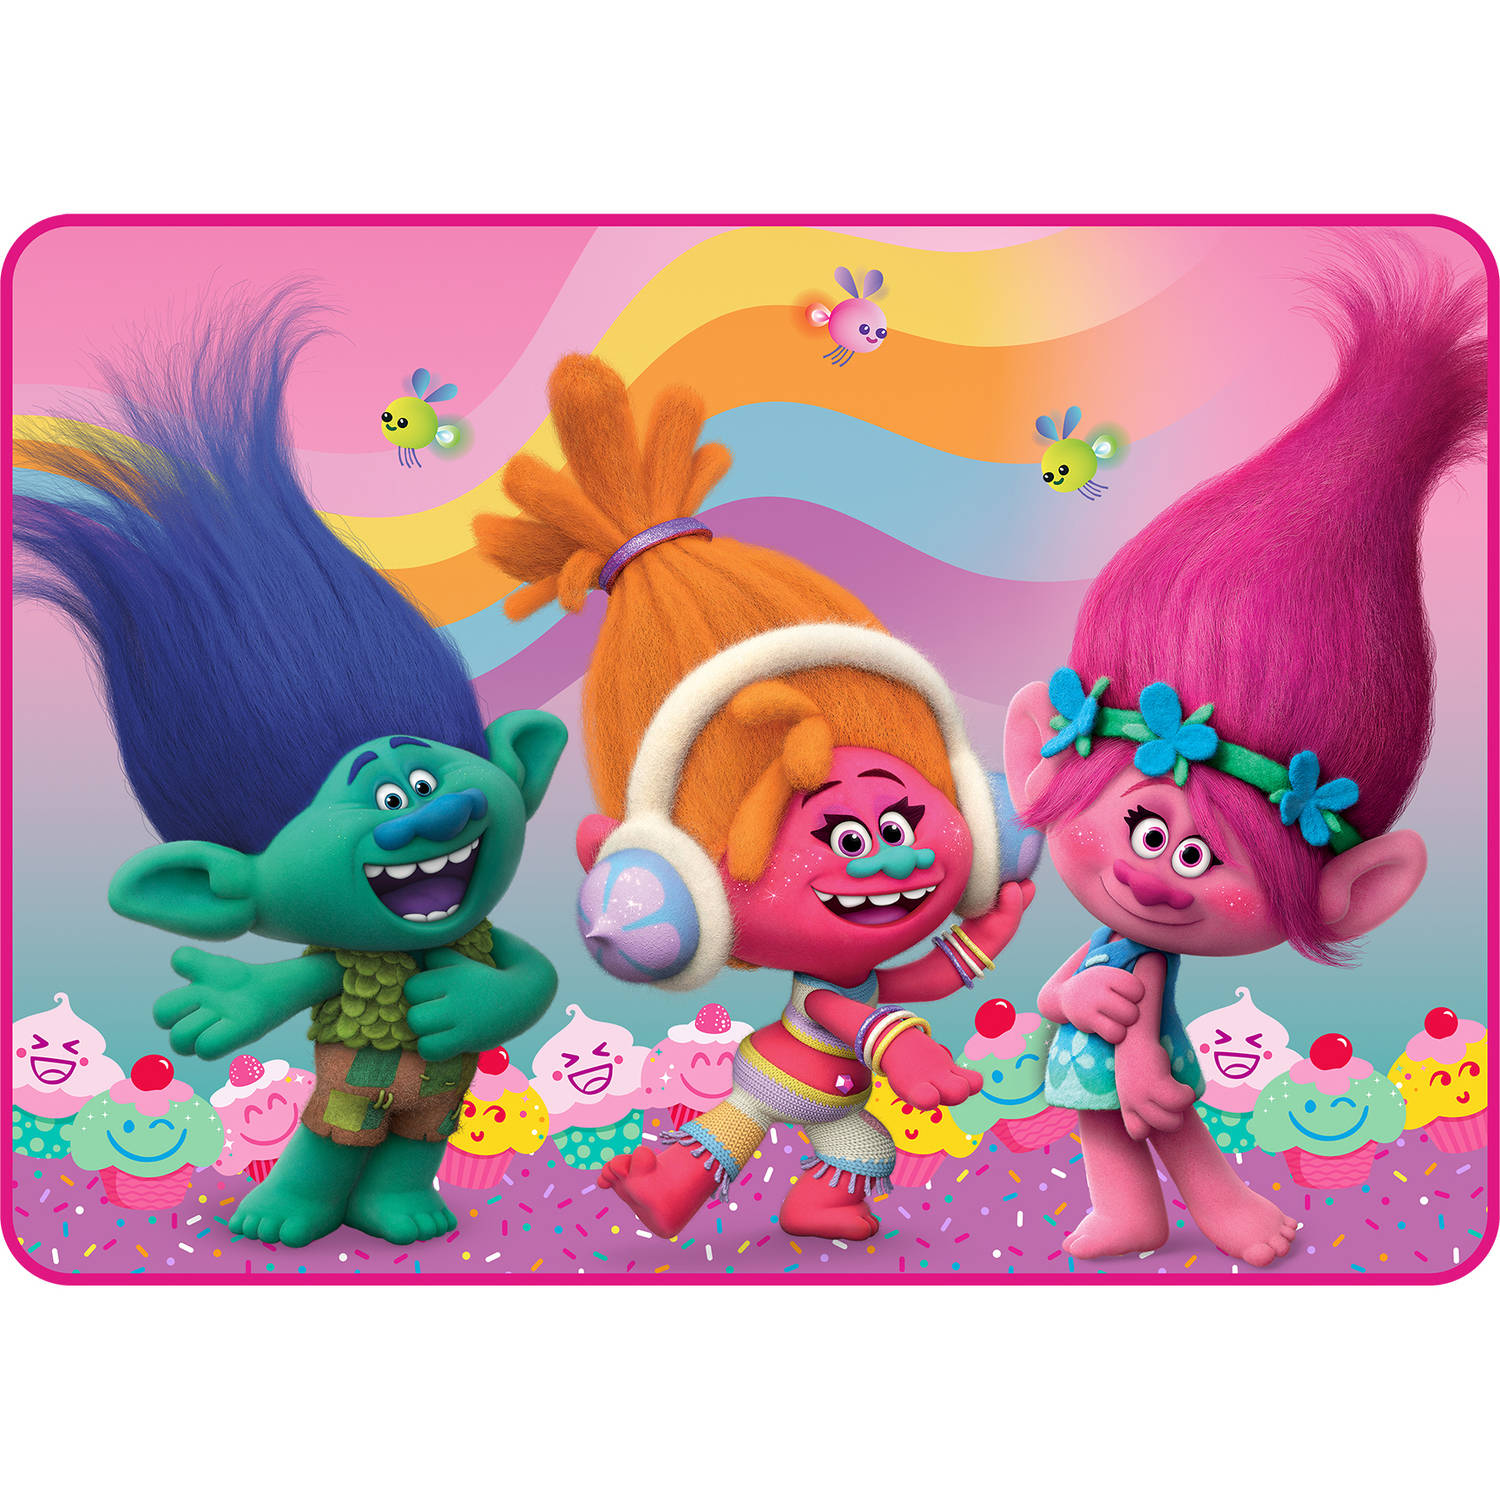 Rainbows Trolls Cake Topper Edible Frosting Image 1 4 Sheet